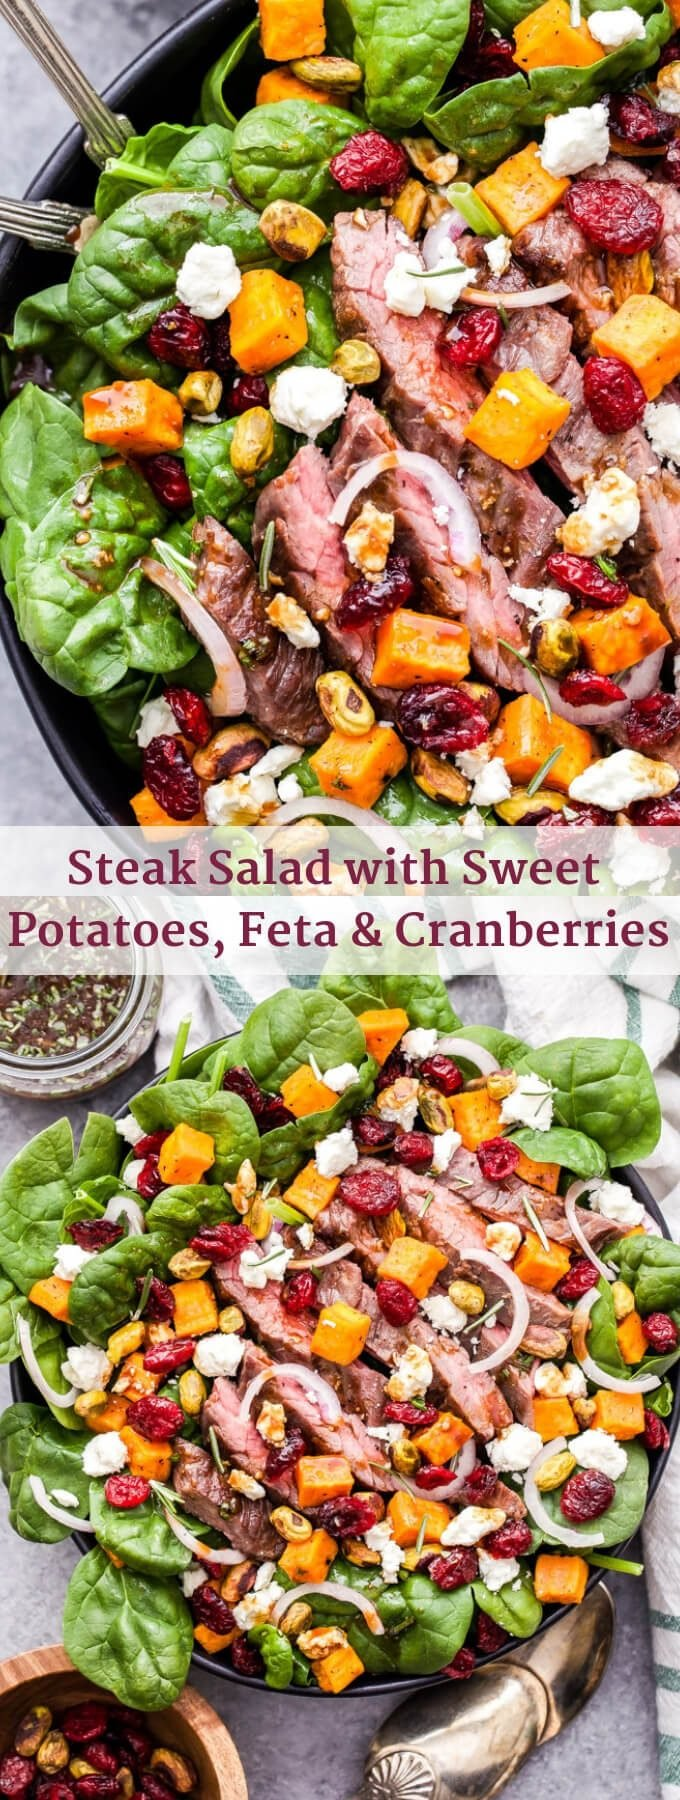 Steak Salad with Sweet Potatoes, Feta and Cranberries is a delicious and filling main dish salad. You'll love the savory, sweet and salty toppings and there's plenty of protein to help keep you full and satisfied! #salad #steak #steaksalad #glutenfree #healthyrecipe #dinner #sweetpotato